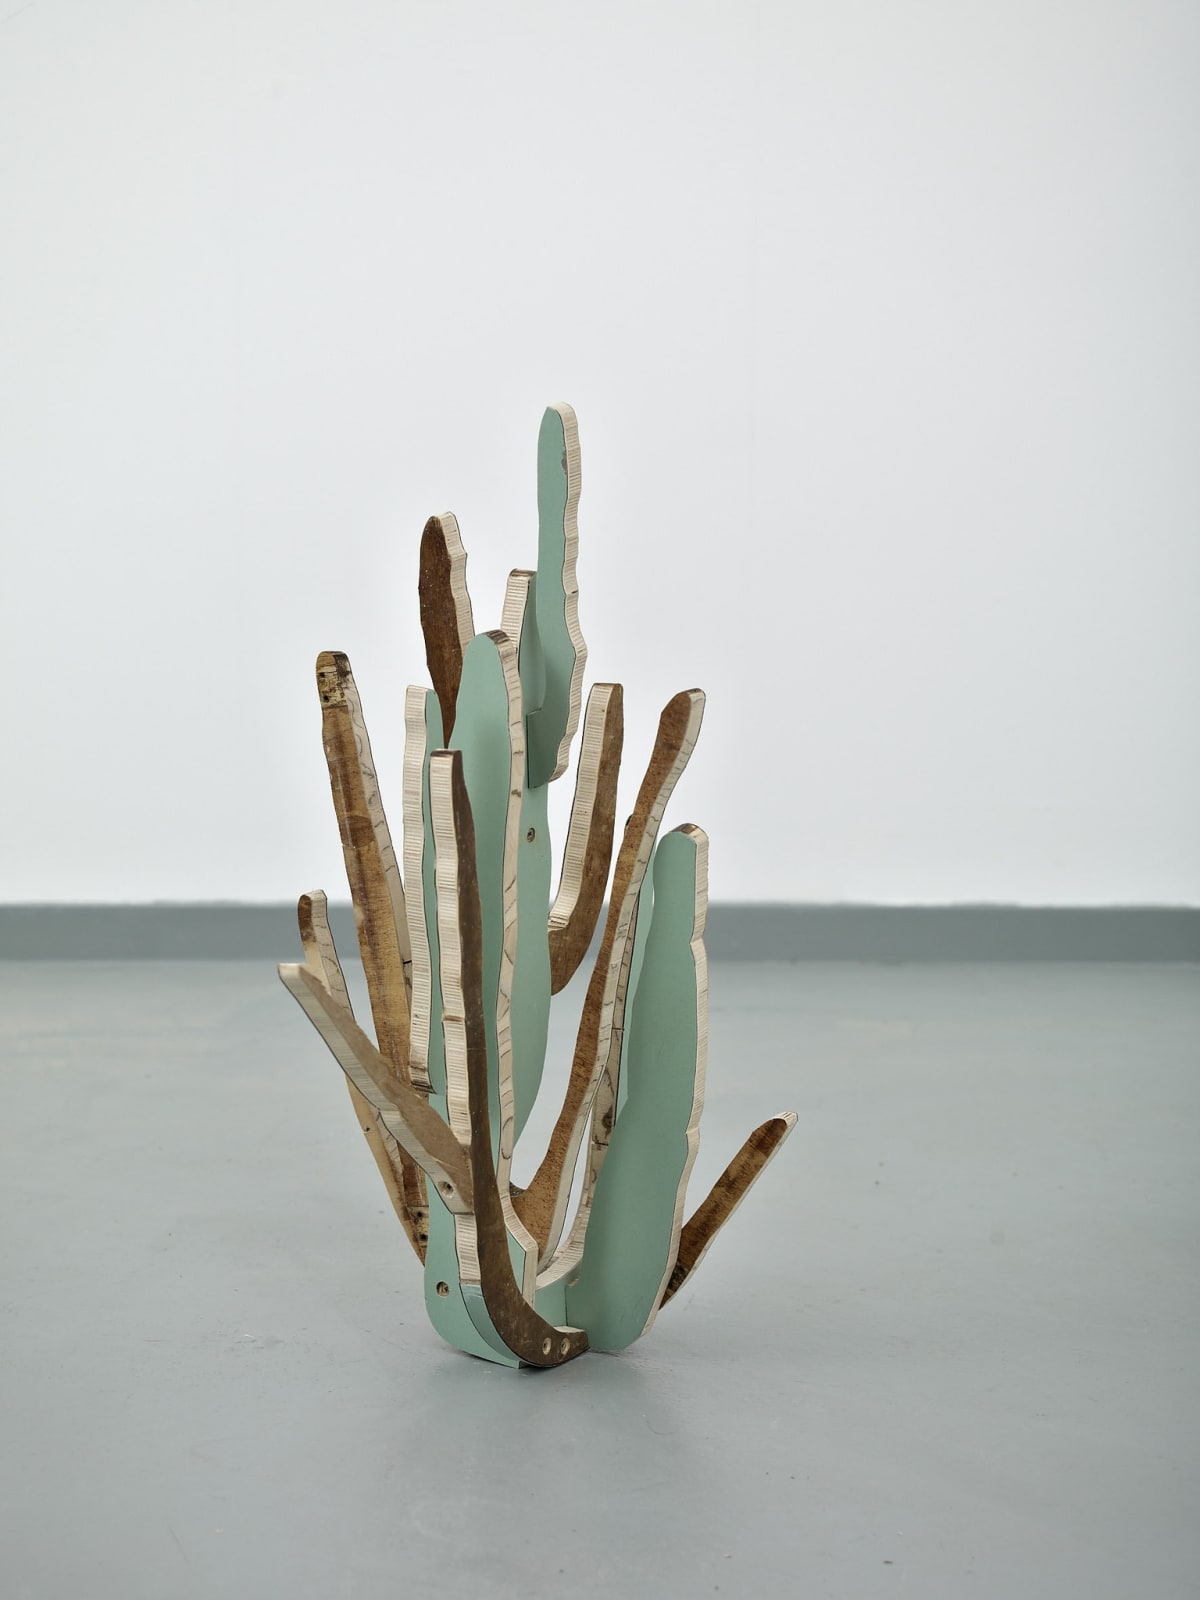 Paul Merrick, Cactus (Organ Pipe), 2014